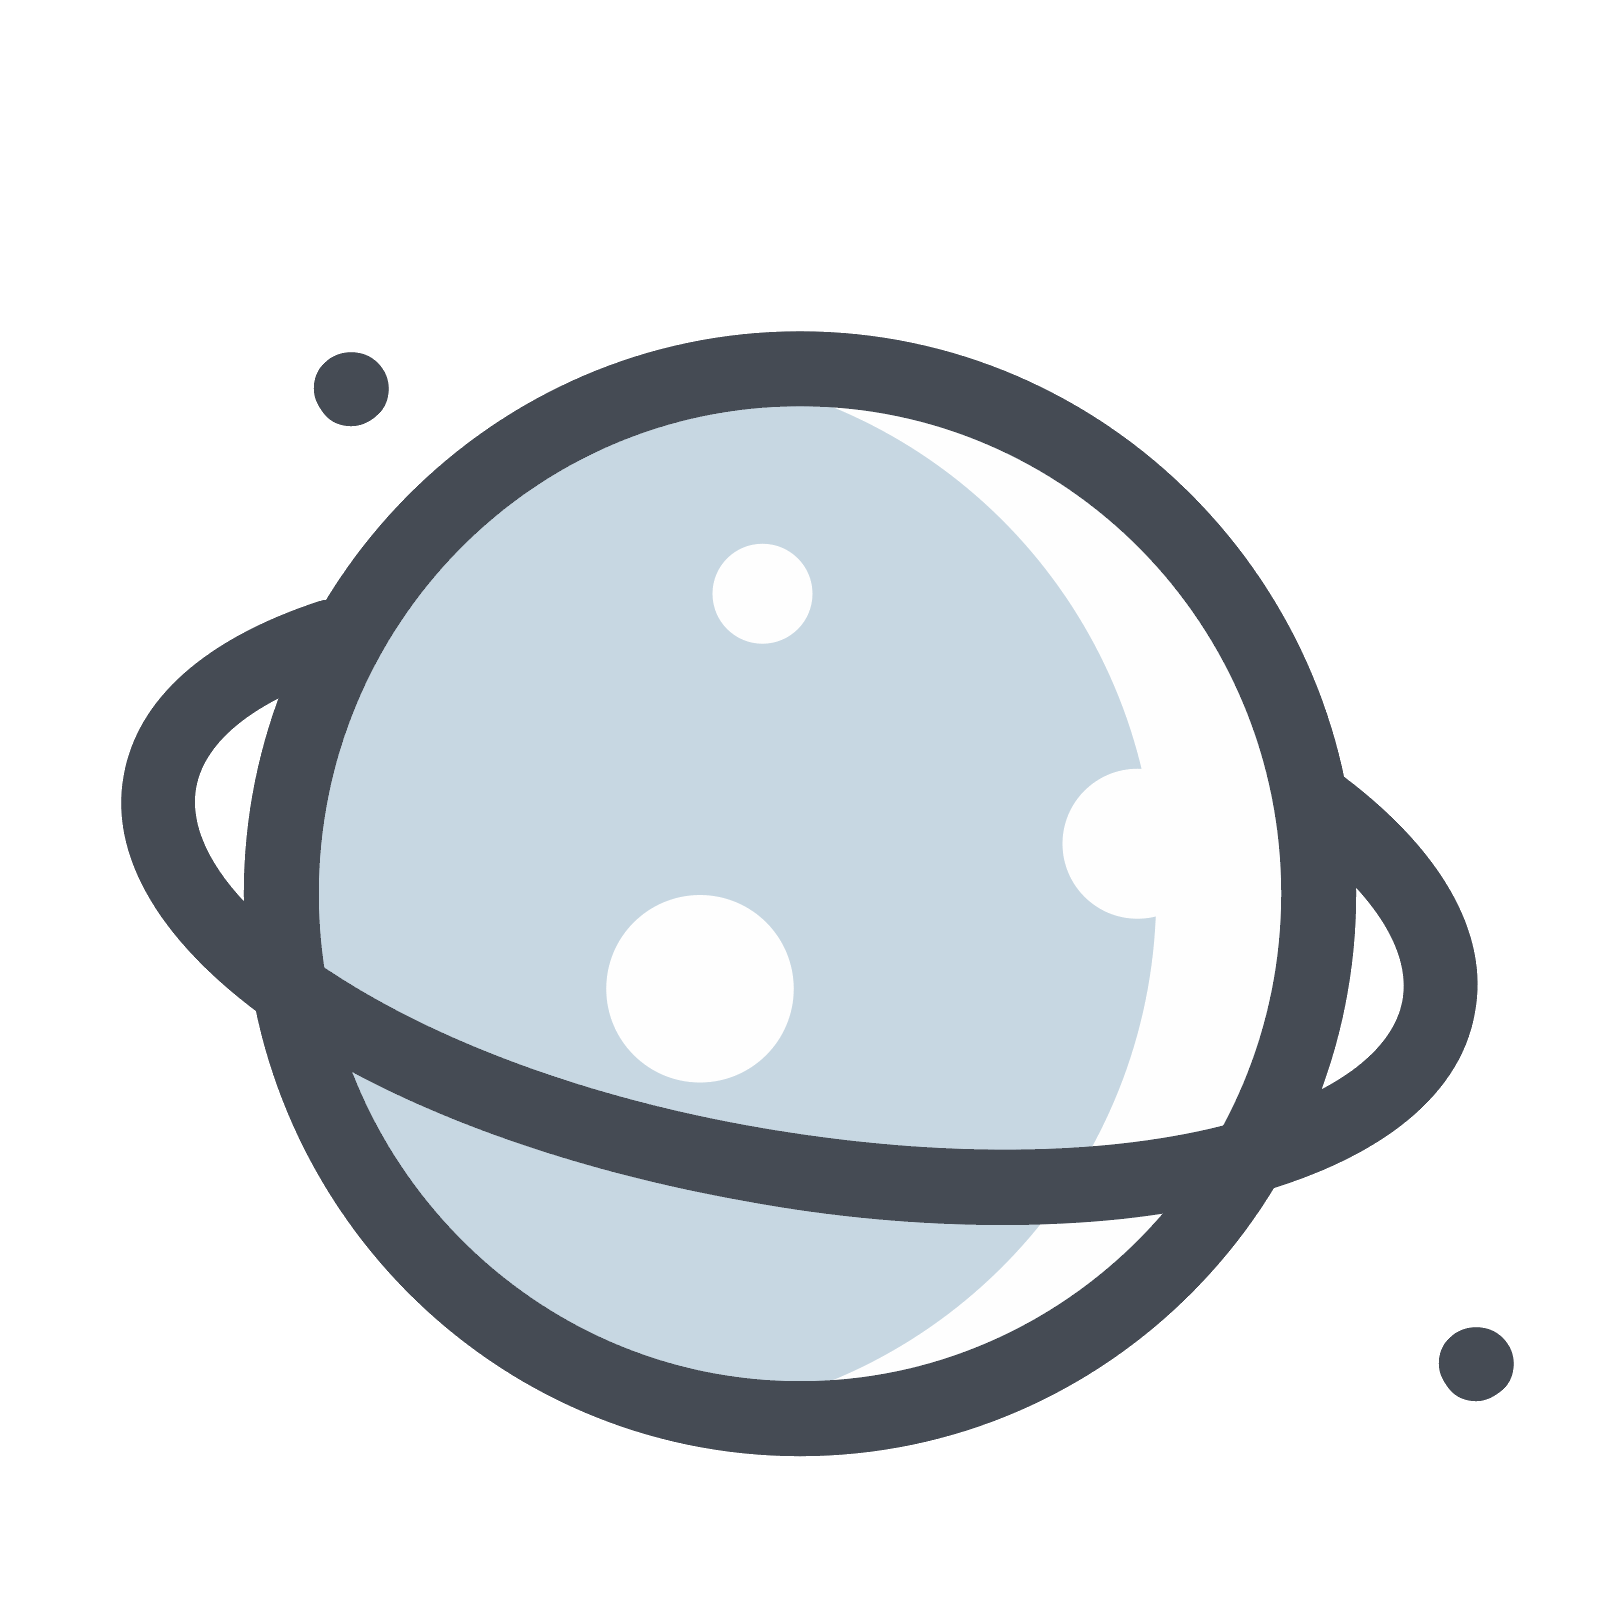 clipart freeuse download Planets vector. Planet on the dark.